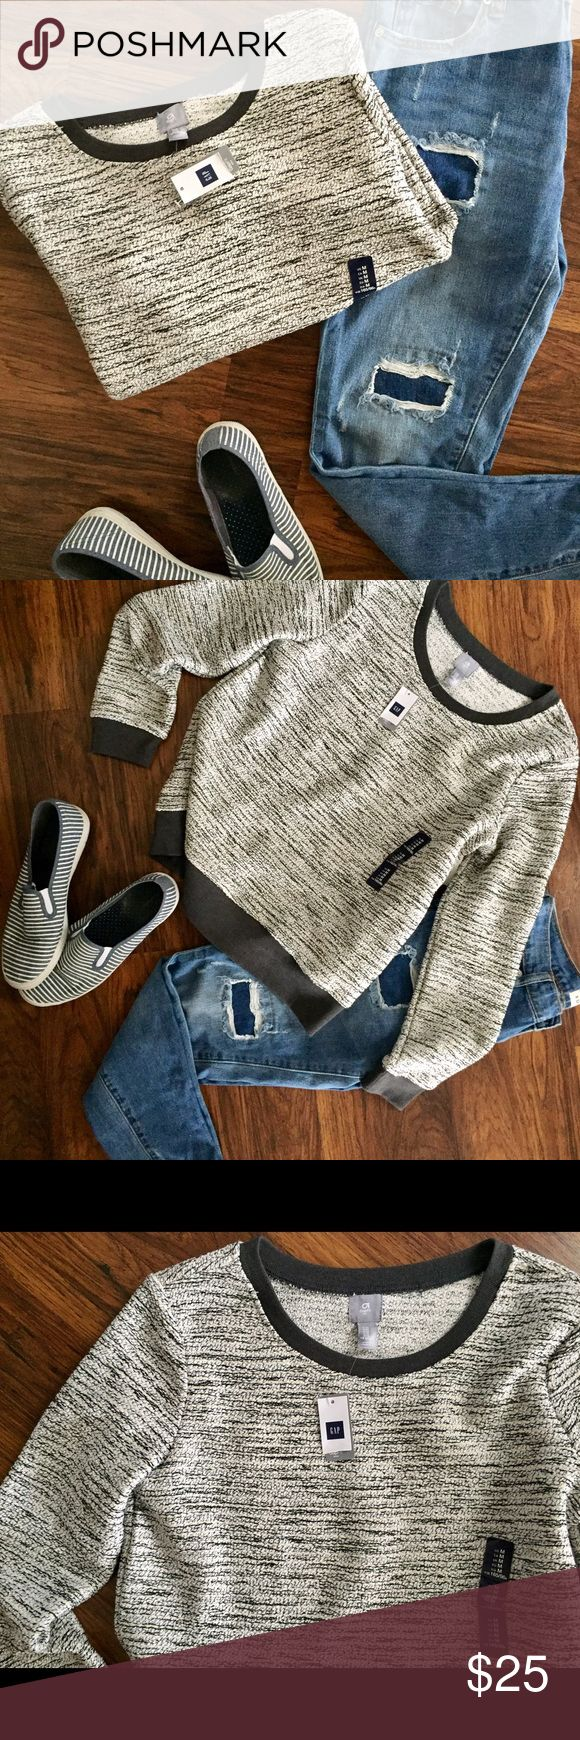 Gap Fit Crew Neck Sweater Brand New GapFit crew neck! Perfect for on-the-go shopping days or wear it with leggings to the gym or yoga! ✨ super cute pattern with colors: gray, cream, black and silver. GAP Sweaters Crew & Scoop Necks